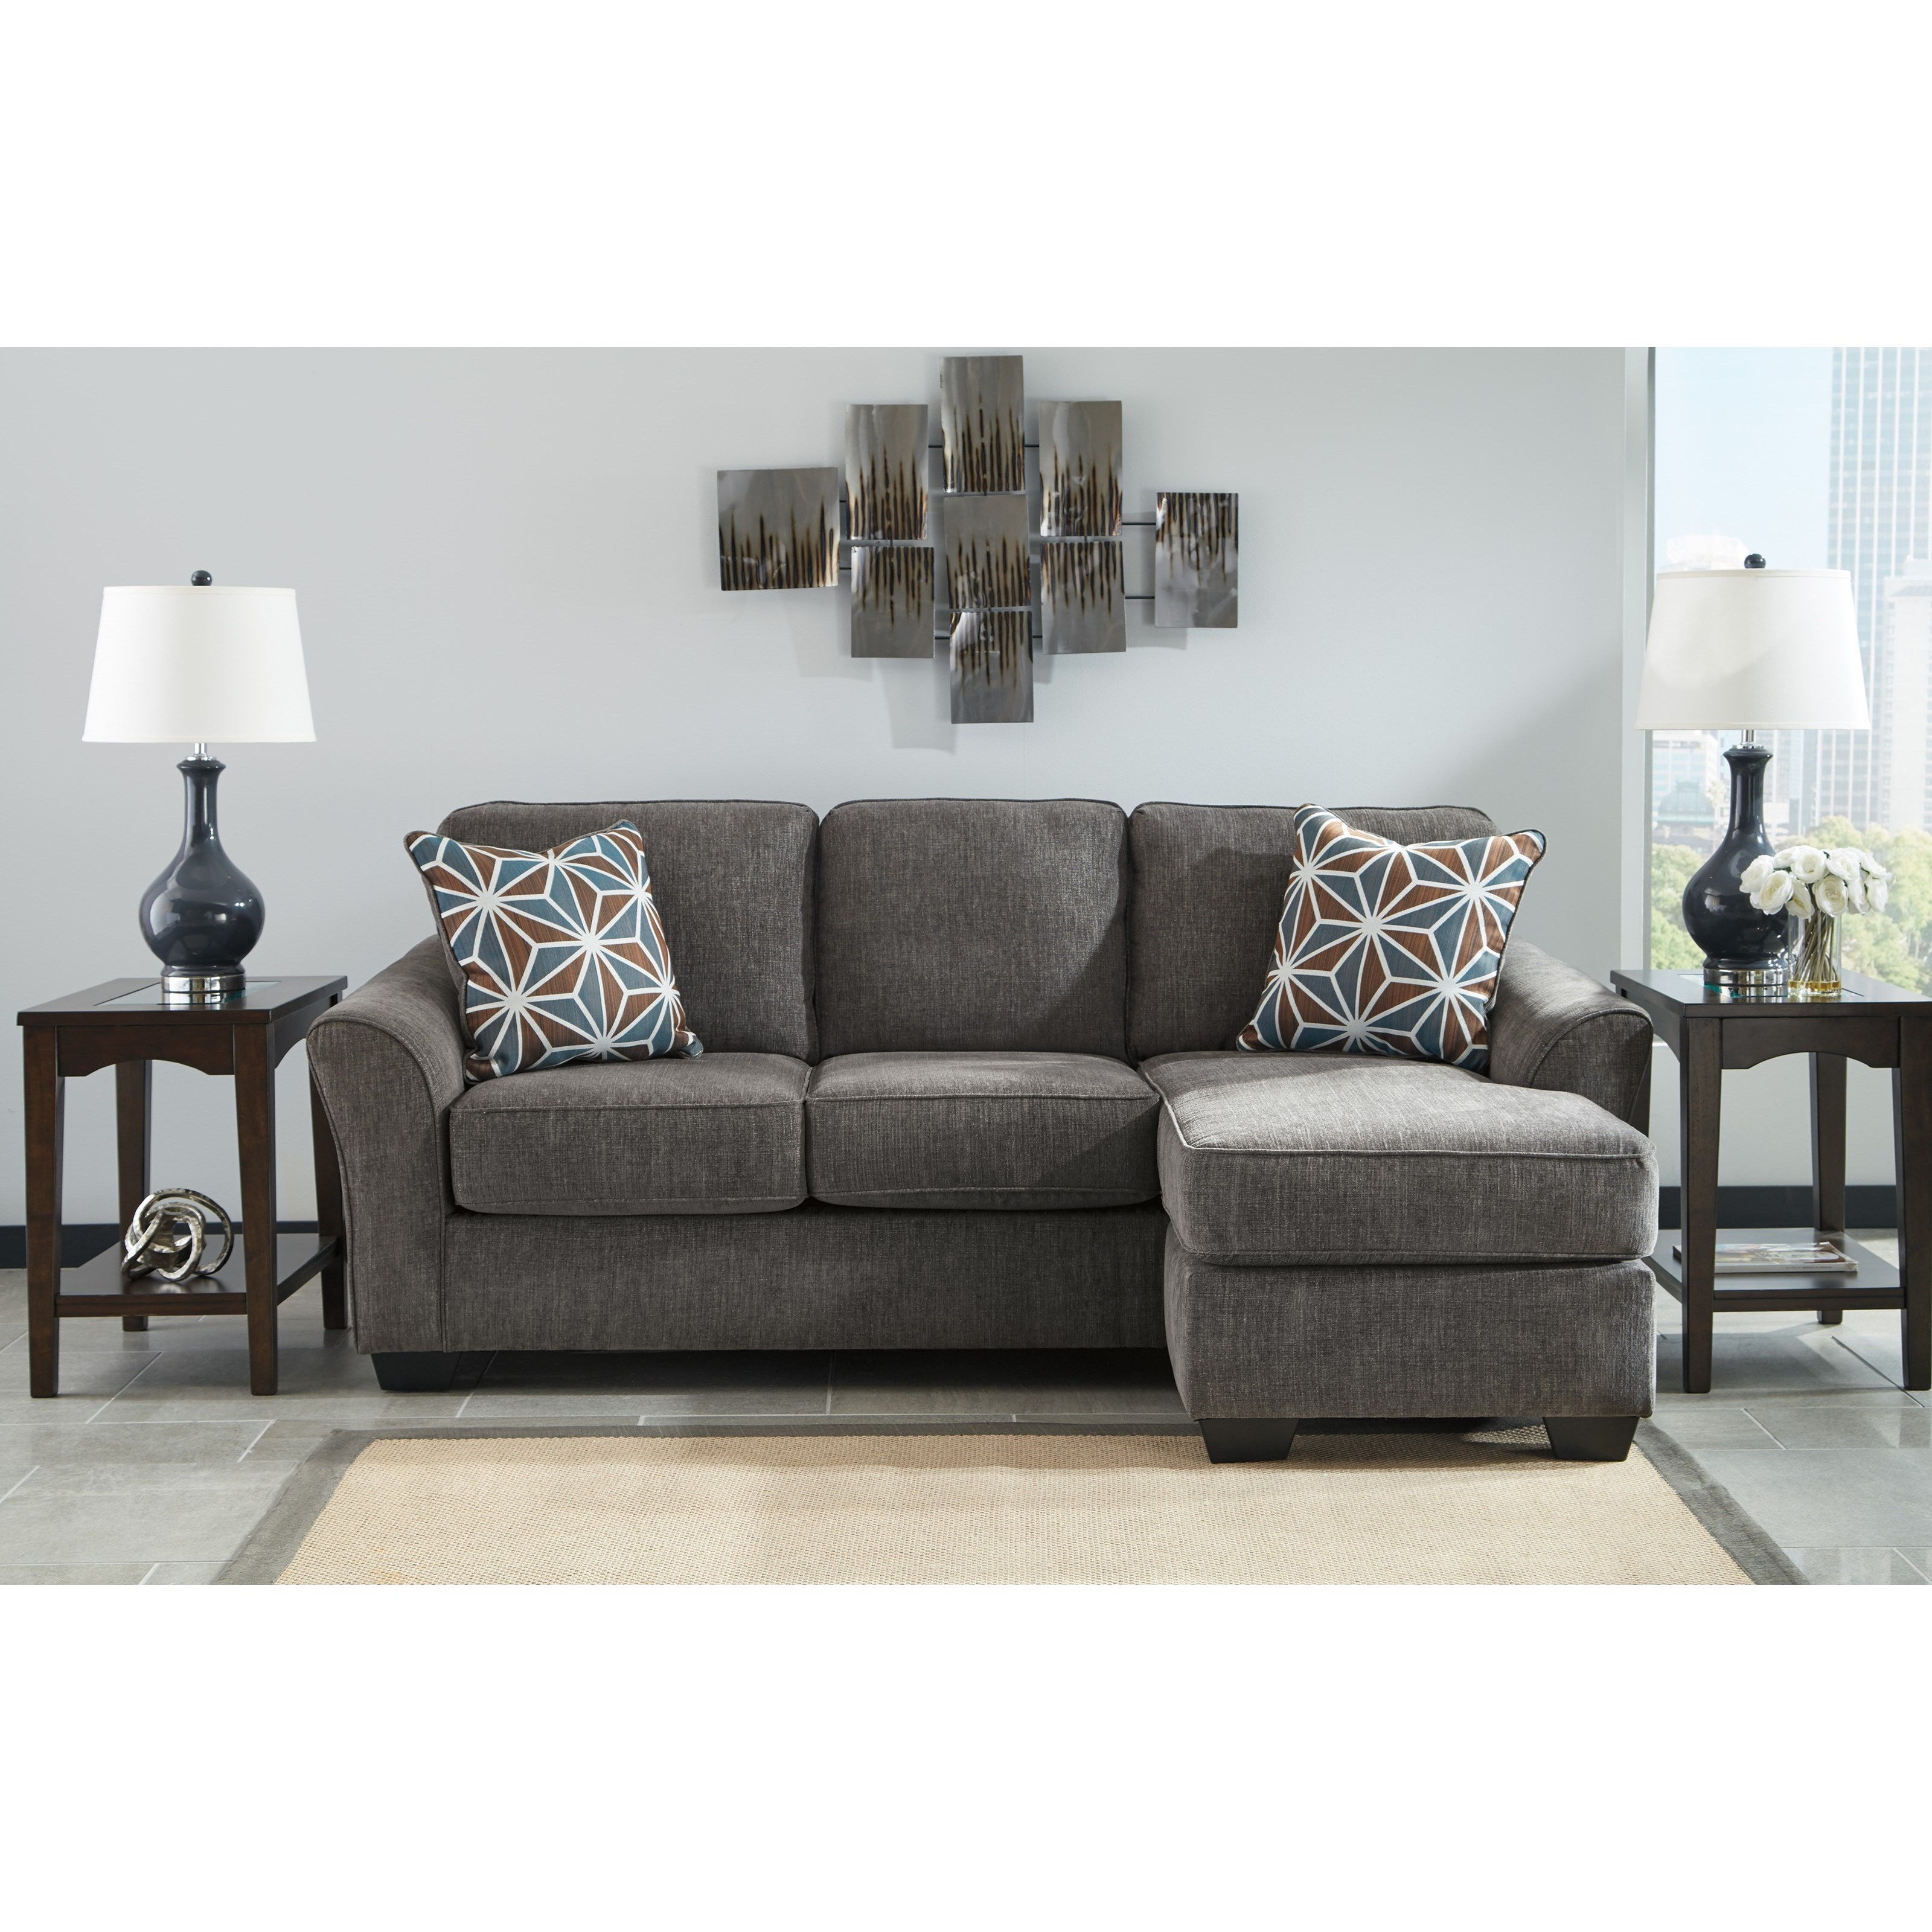 Benchcraft by ashley brise casual contemporary sofa chaise for Benchcraft chaise lounge